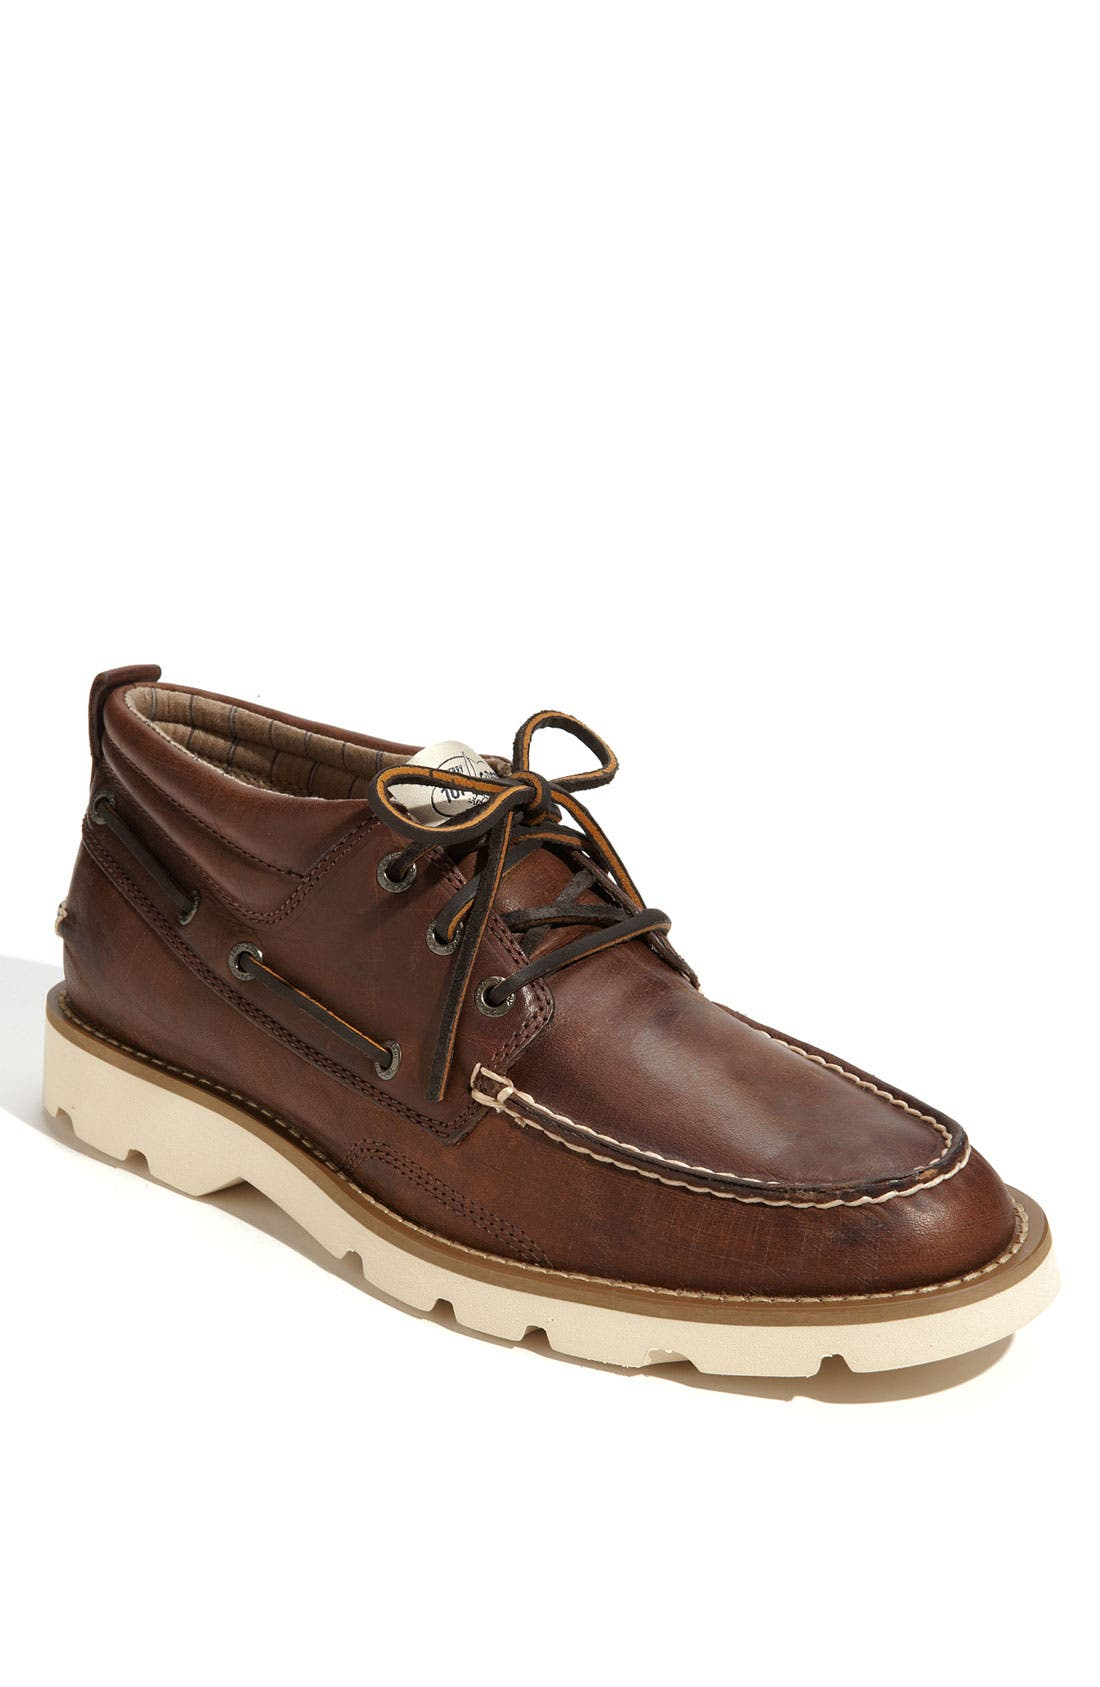 Alternate Image 1 Selected - Sperry Top-Sider® 'Longshoreman' Chukka Boot